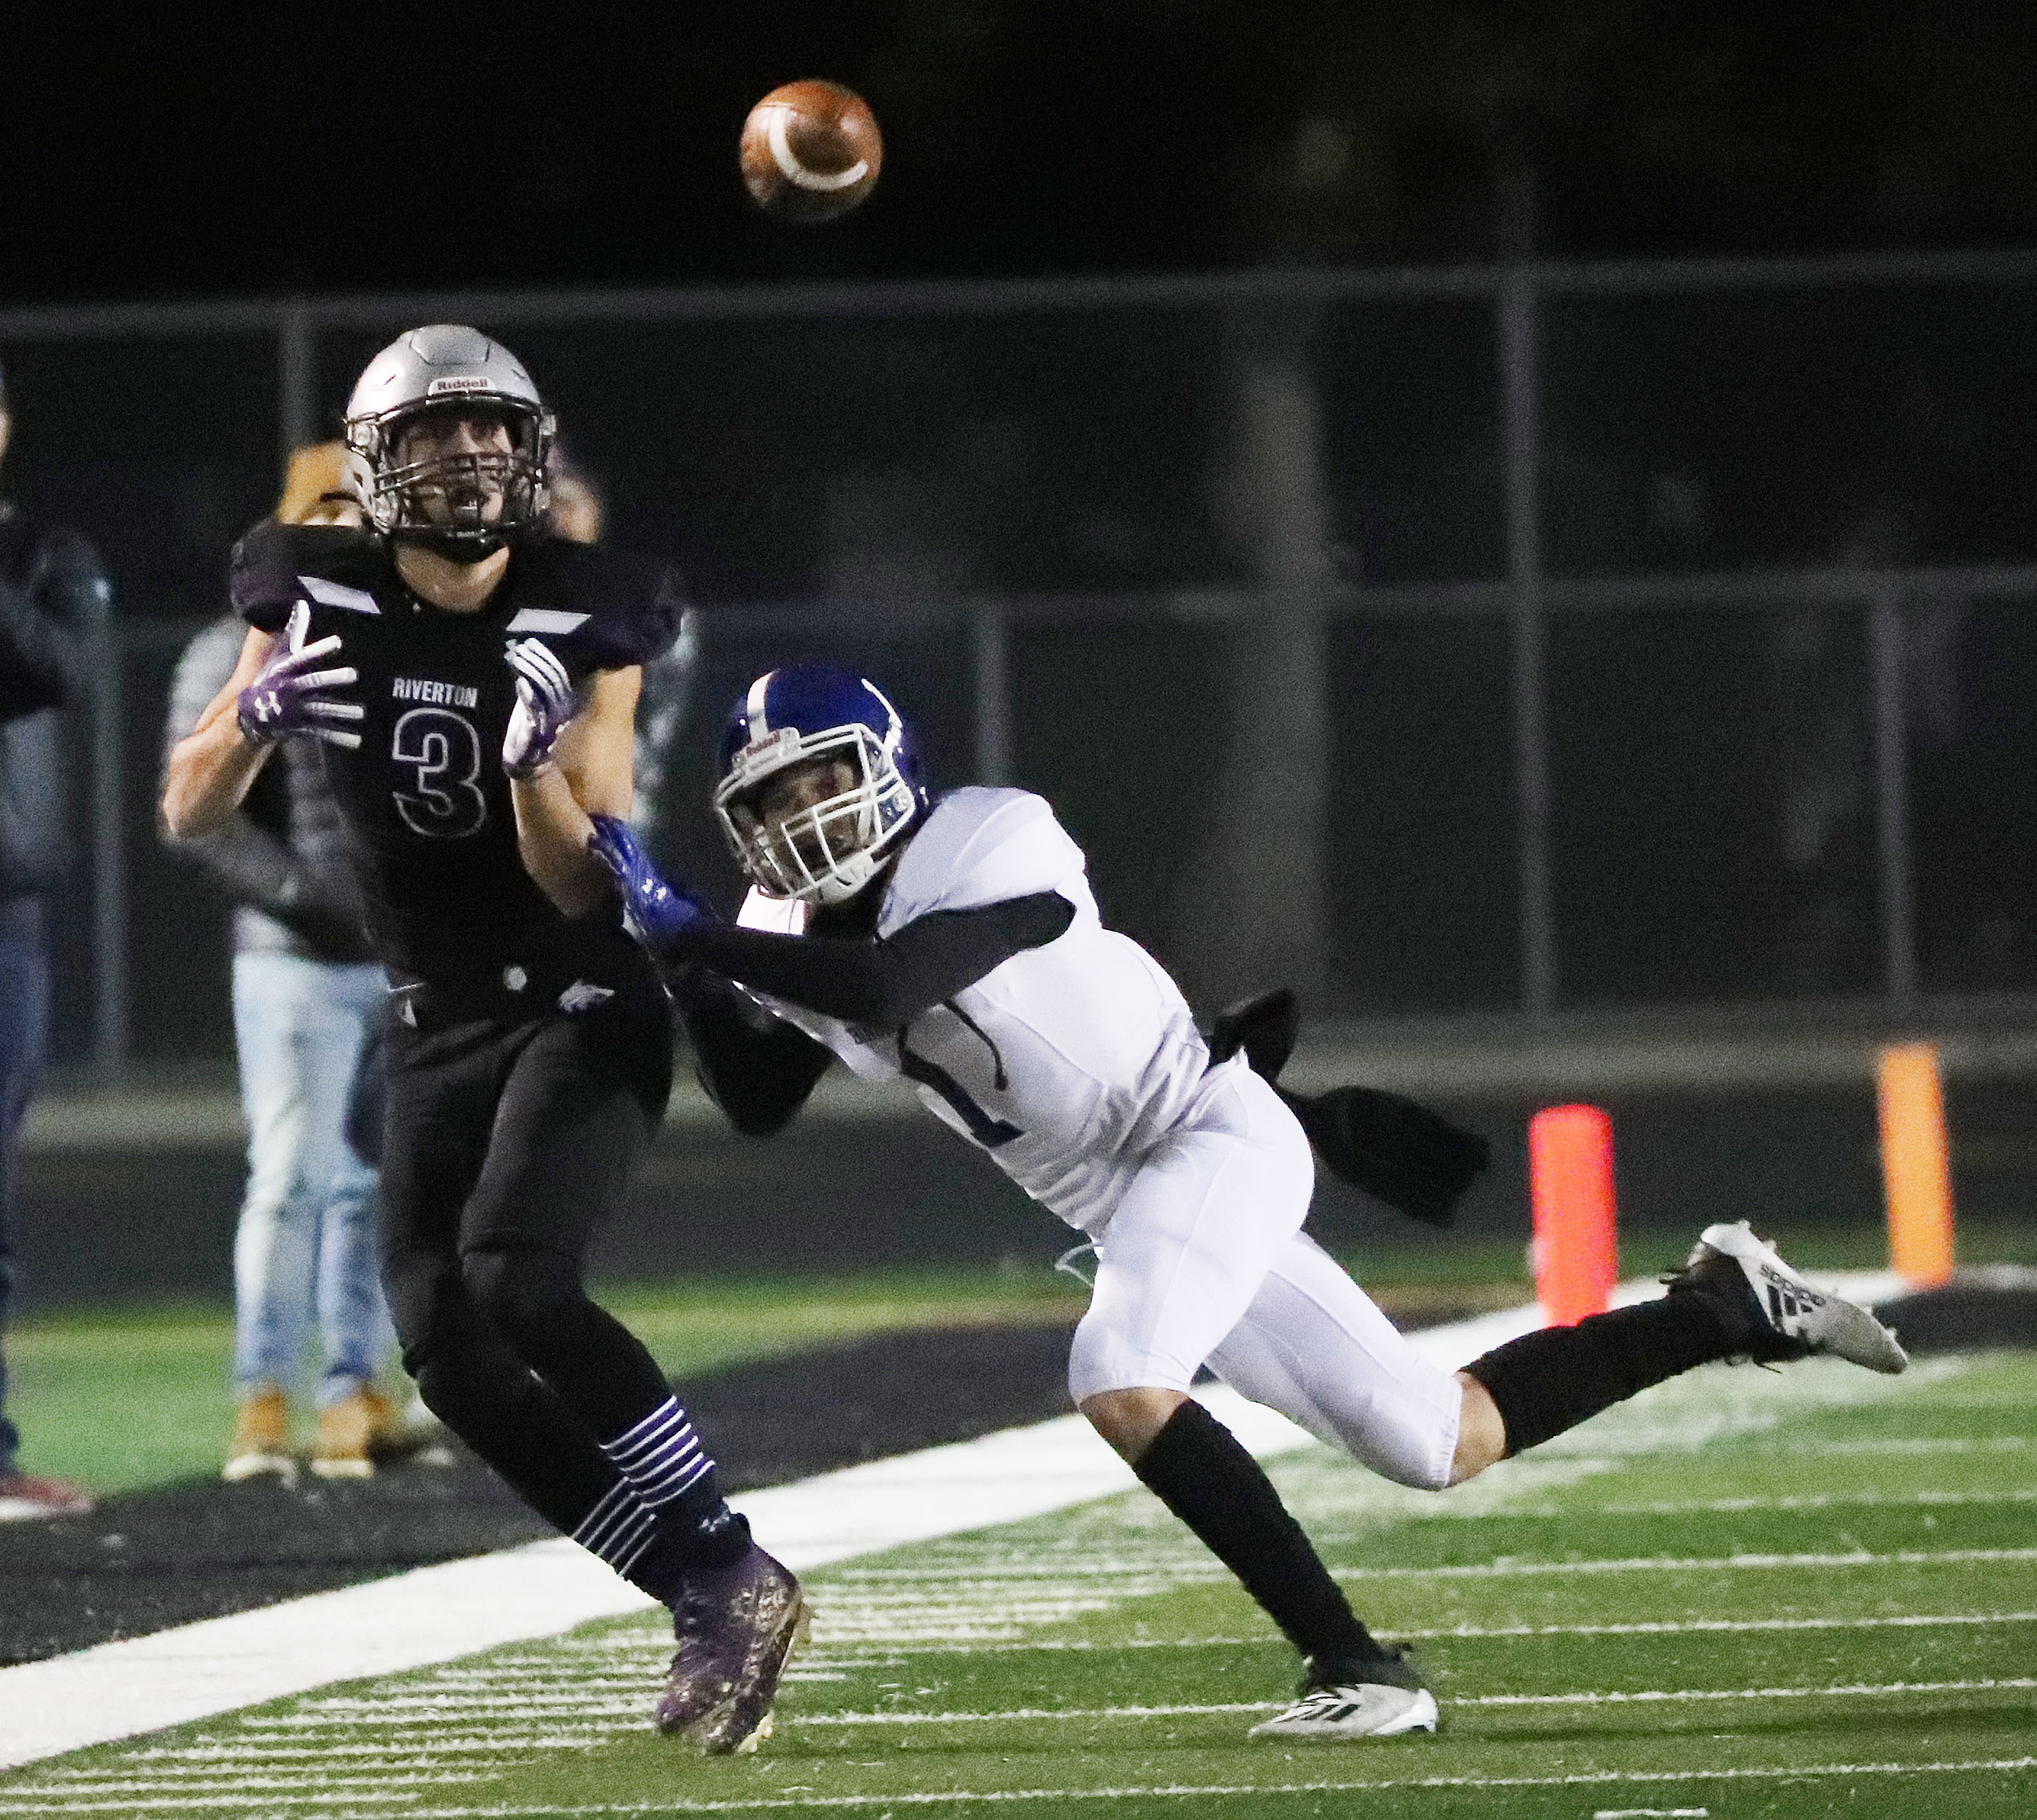 Riverton and Bingham compete in a high school football game in Riverton on Thursday, Oct. 14, 2021.